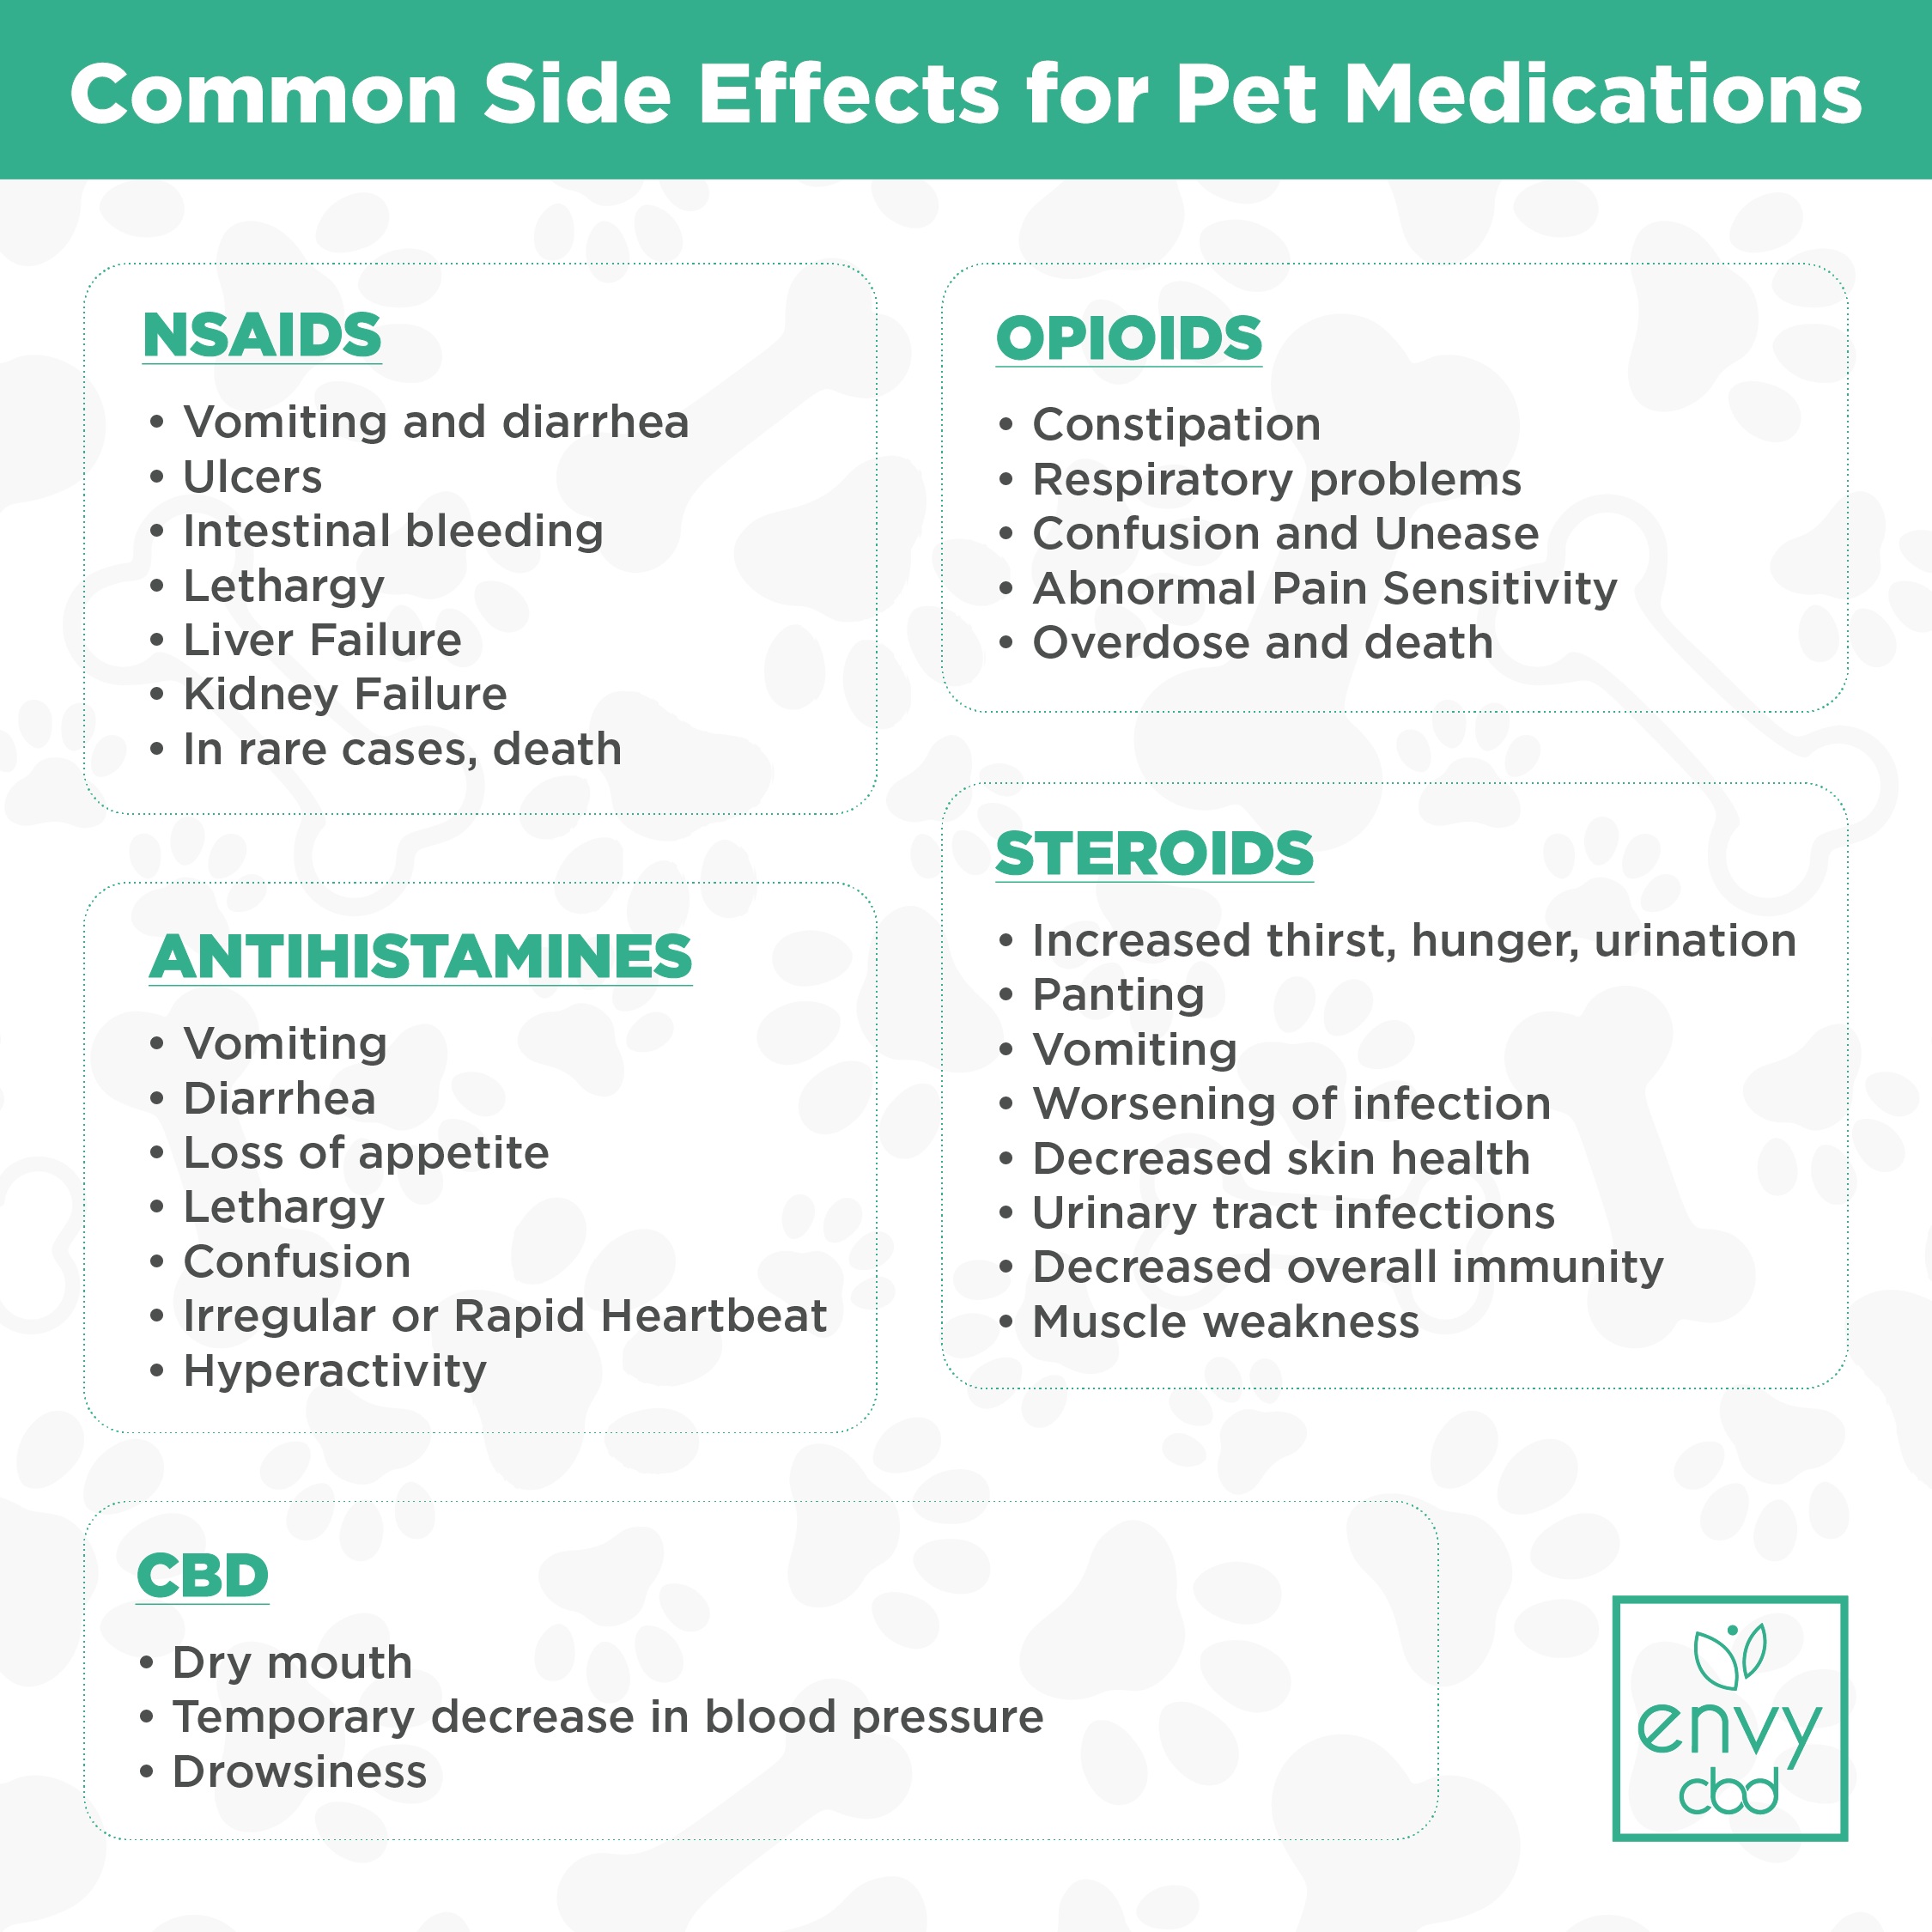 Common Side Effects of Pet Medications